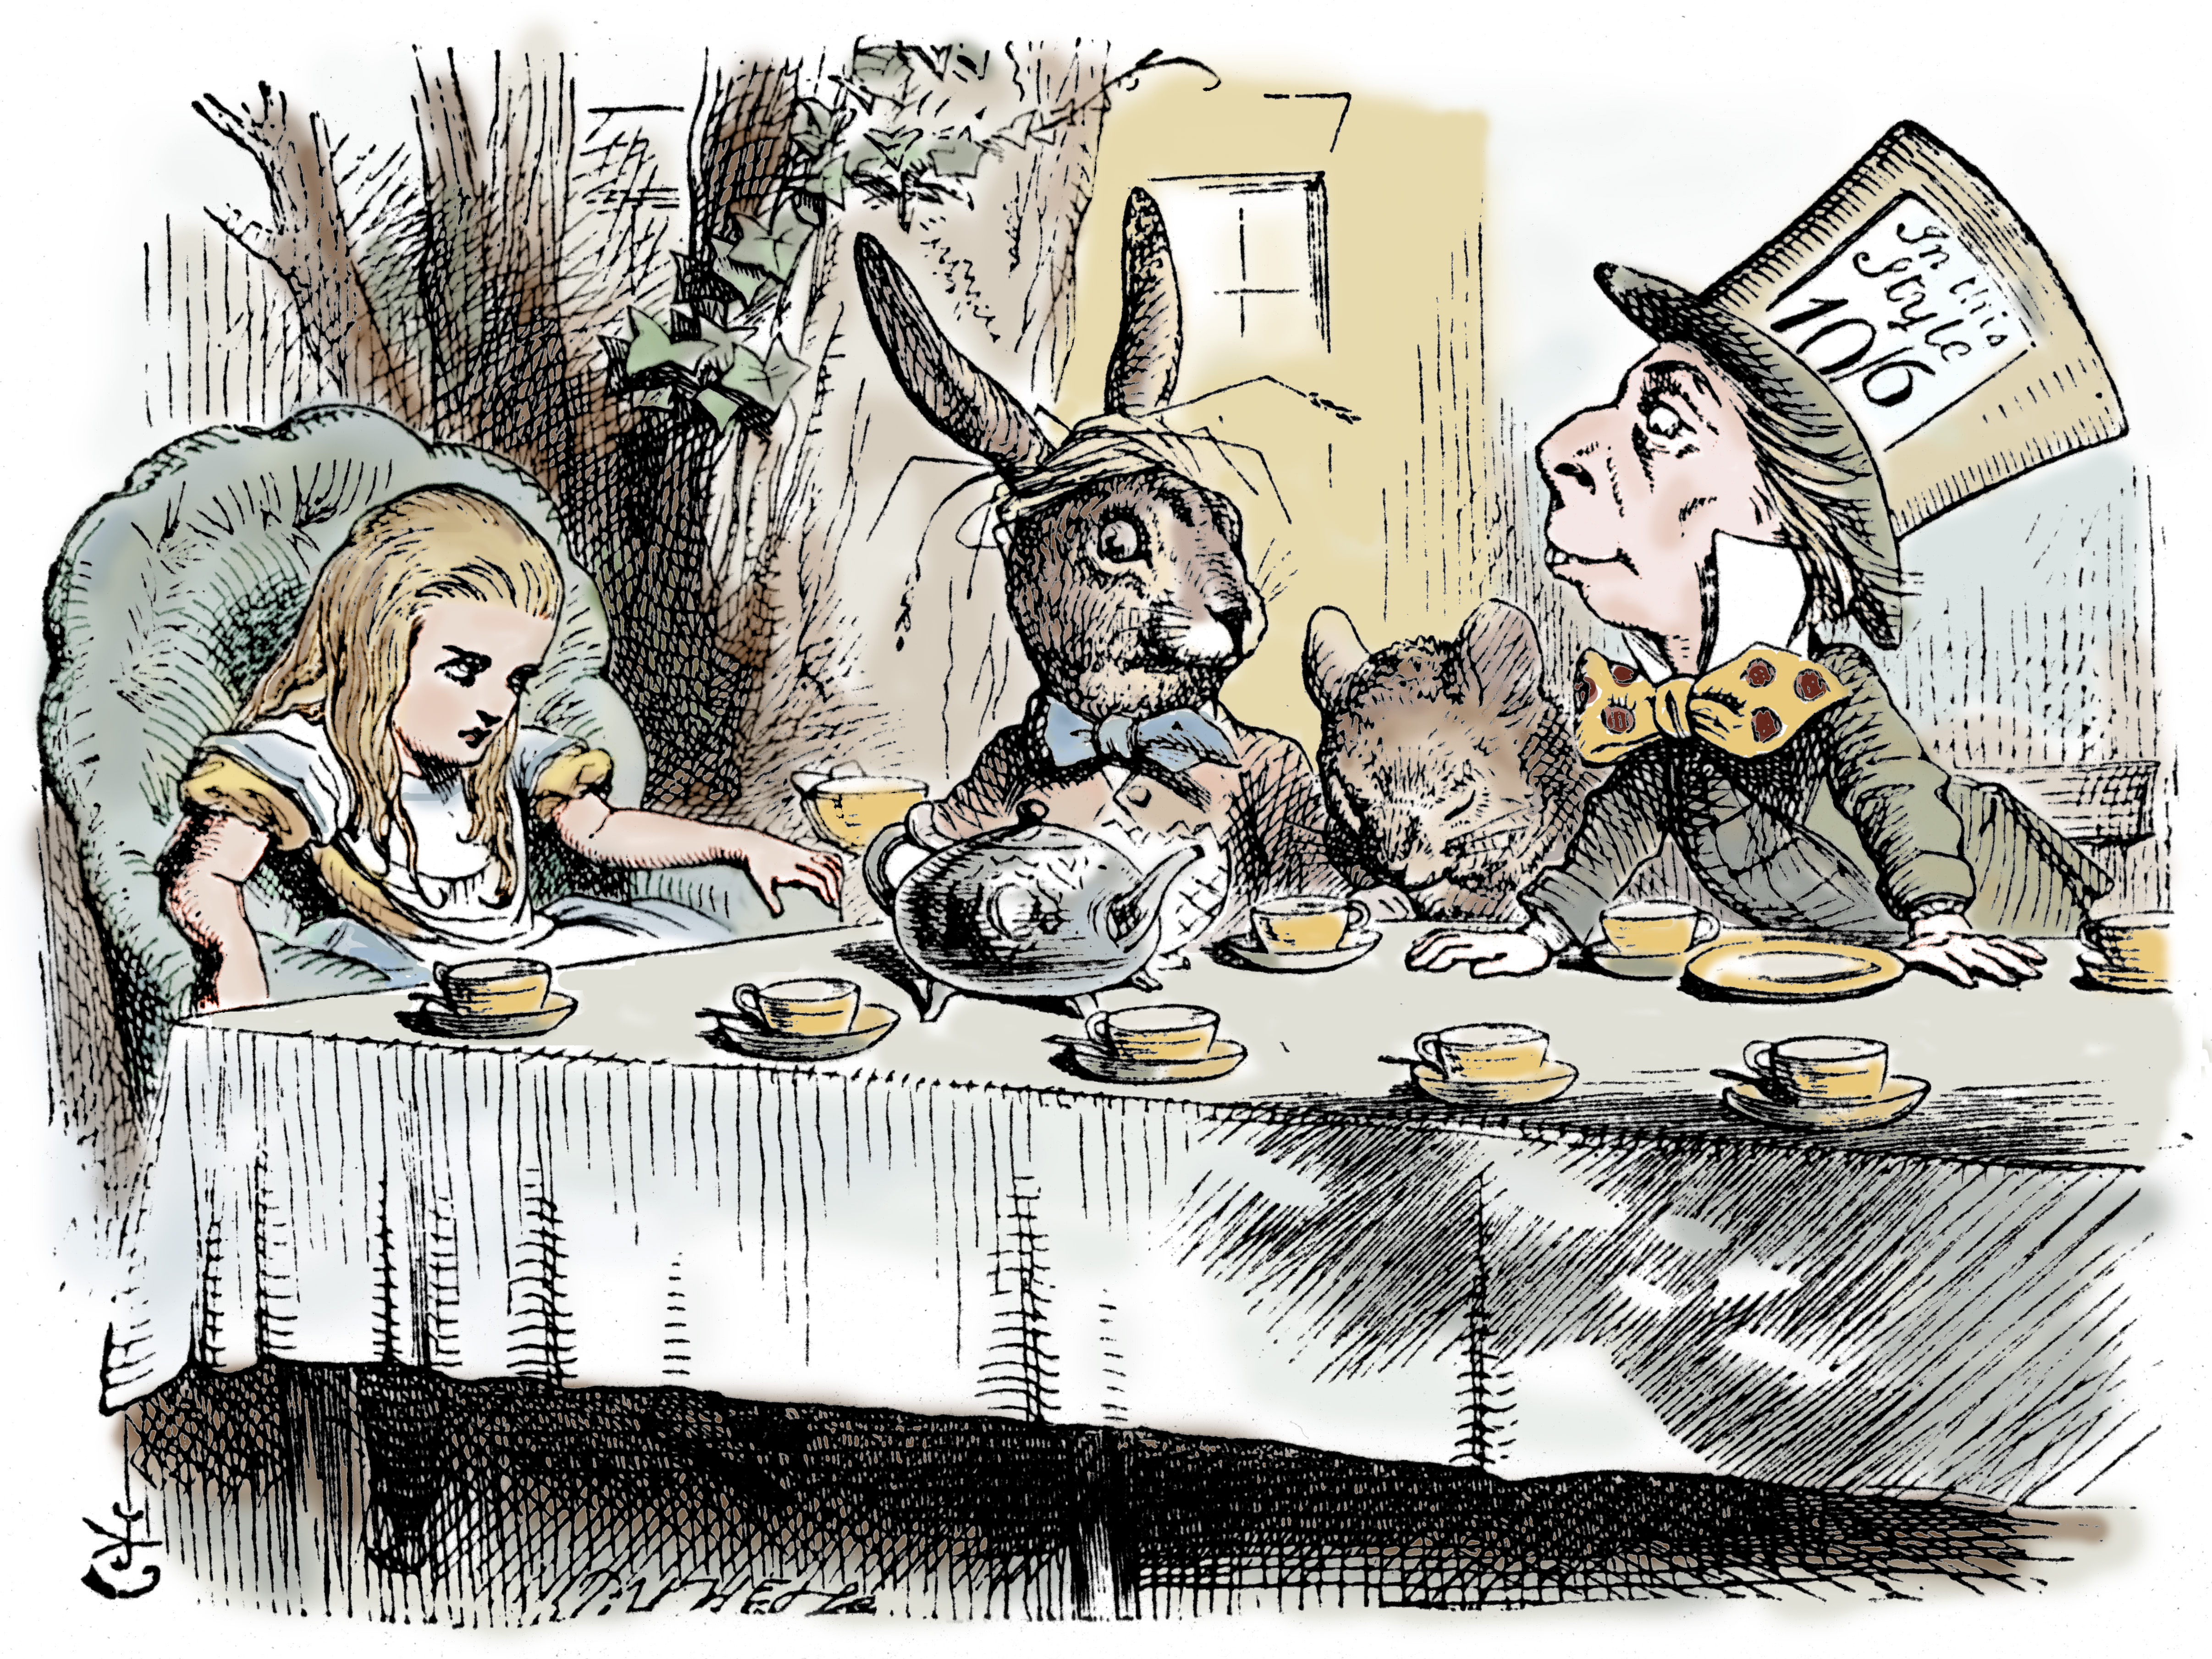 Scene from Alice's Adventures in Wonderland by Lewis Carroll, 1865.